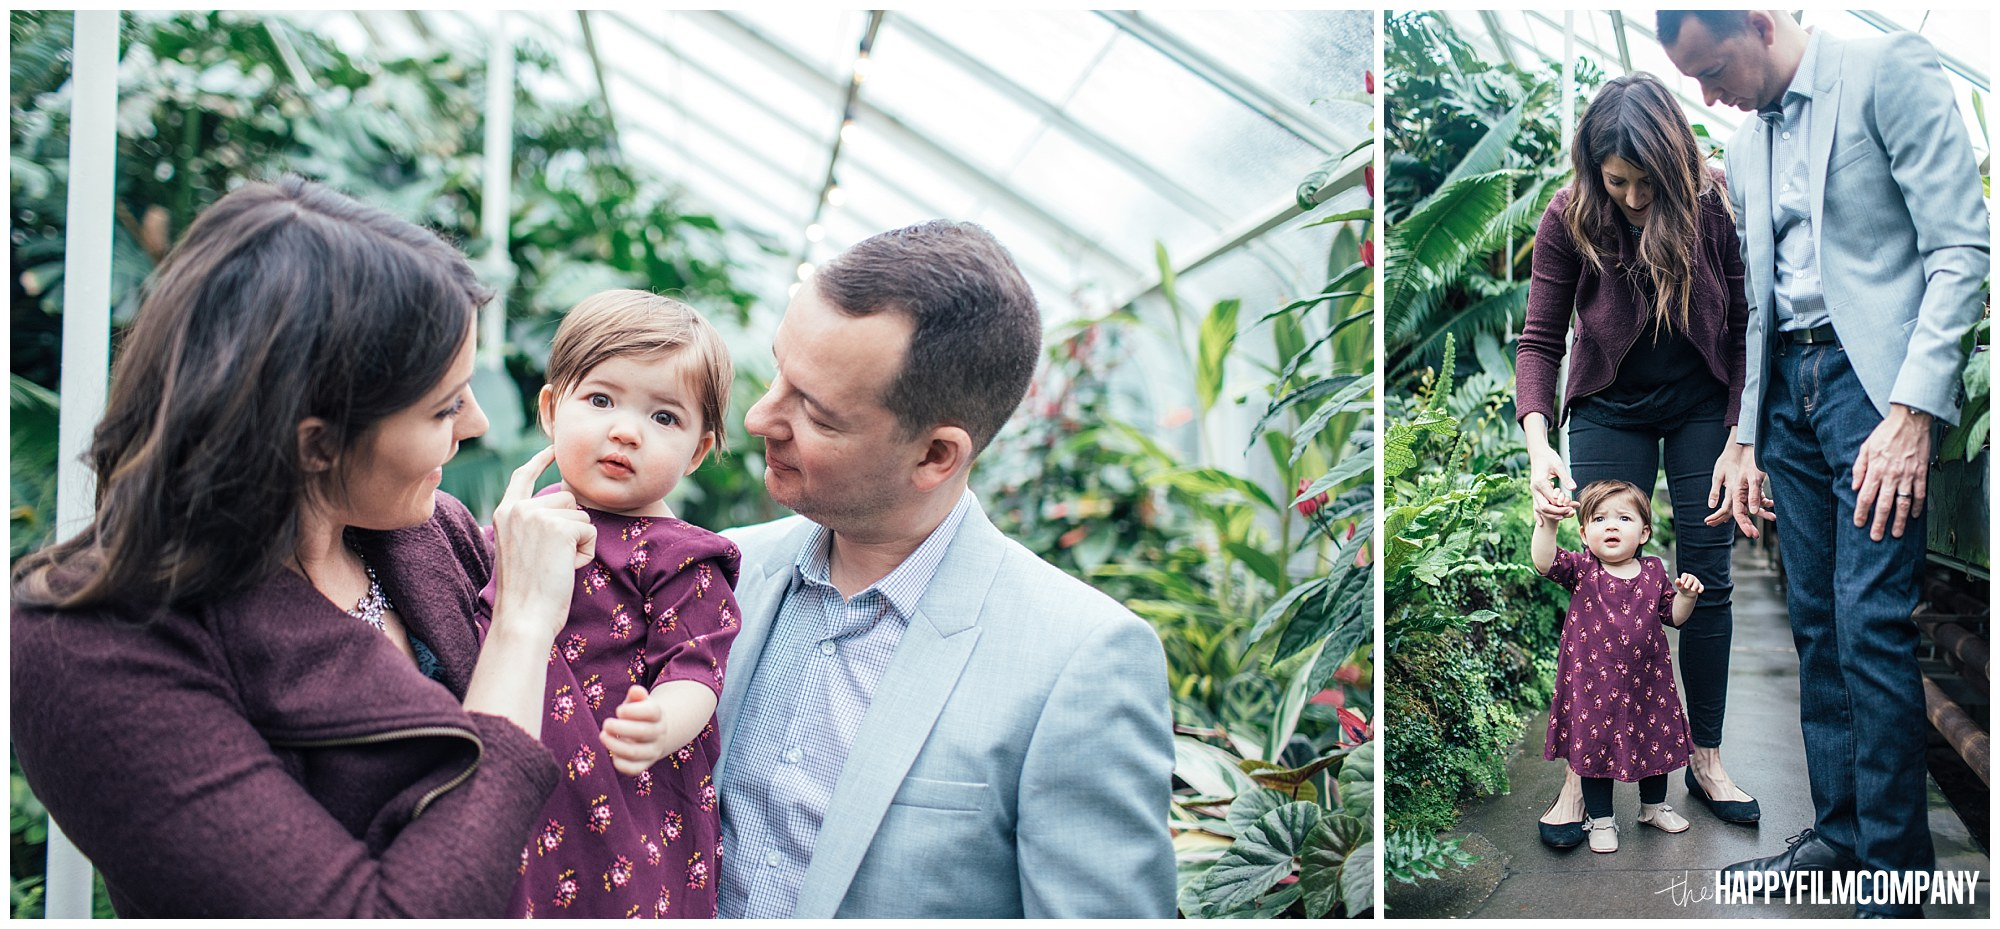 the Happy Film Company - Seattle Family Photos - Volunteer Park Conservatory - little girl in purple dress outfits